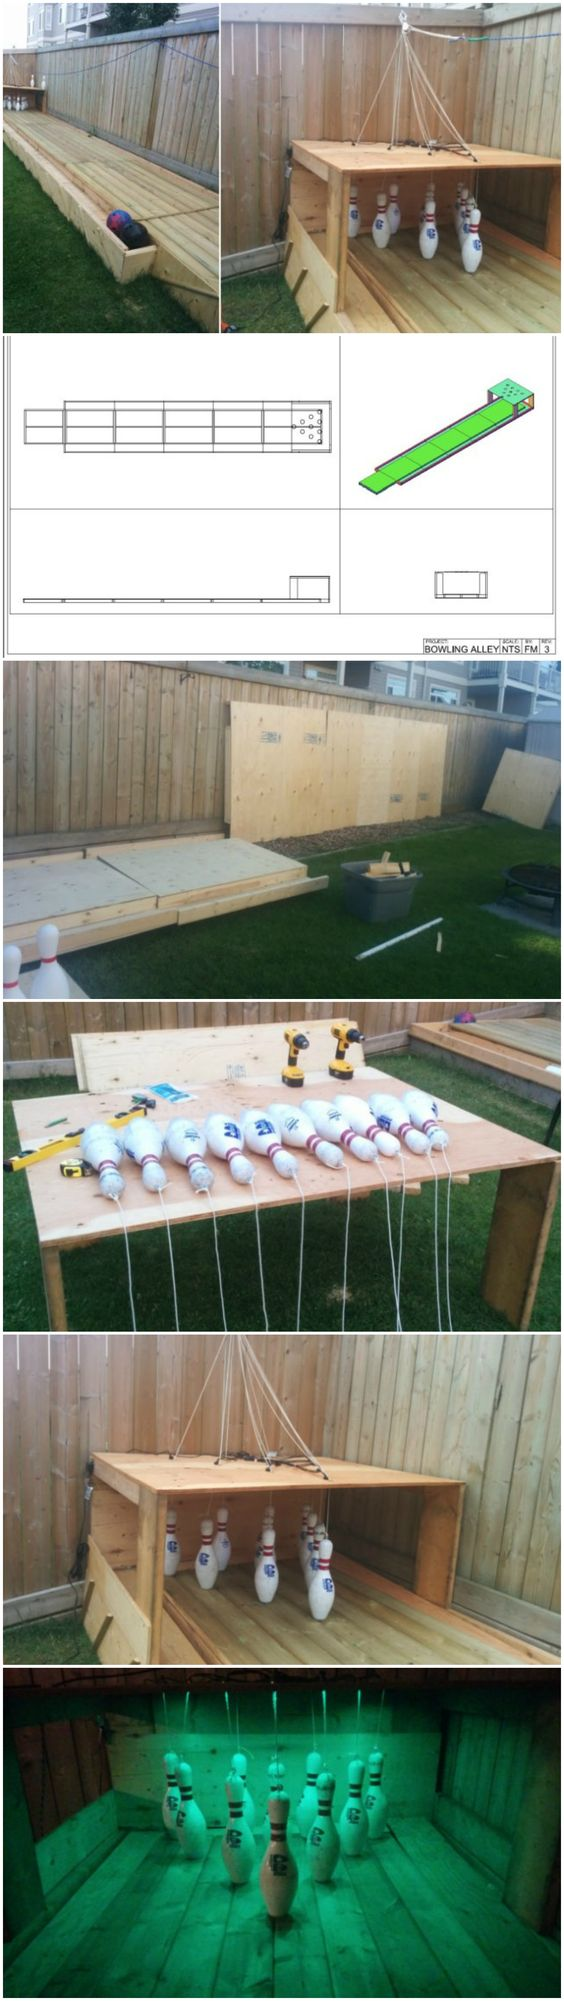 Backyards, Bowling and DIY and crafts on Pinterest